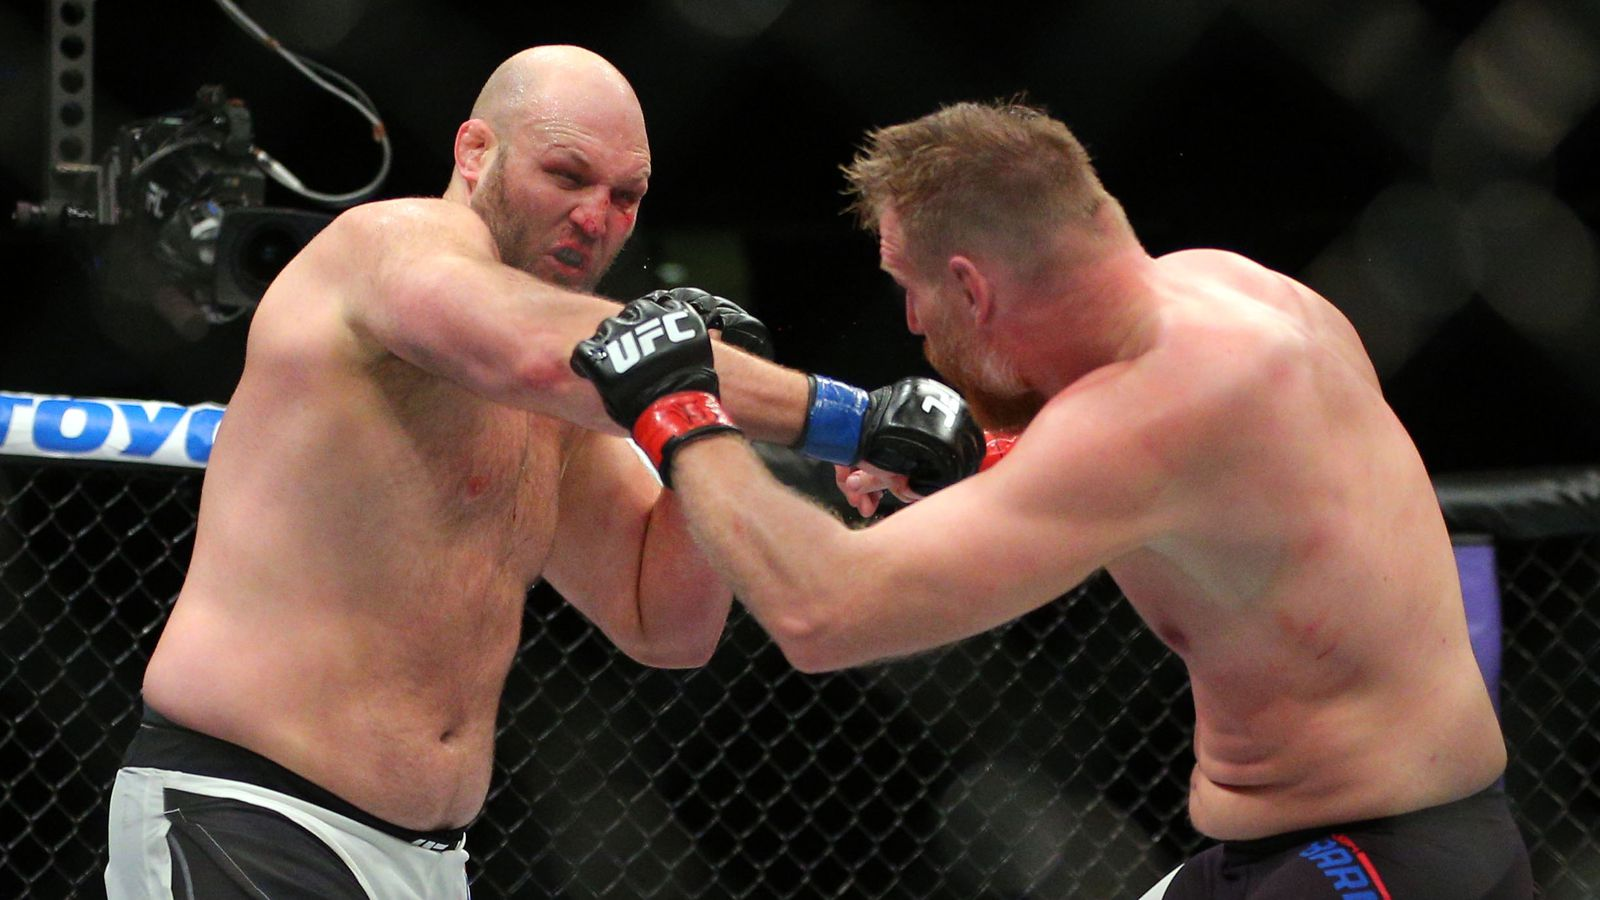 UFC Fight Night 86 results recap: Next matches to make for